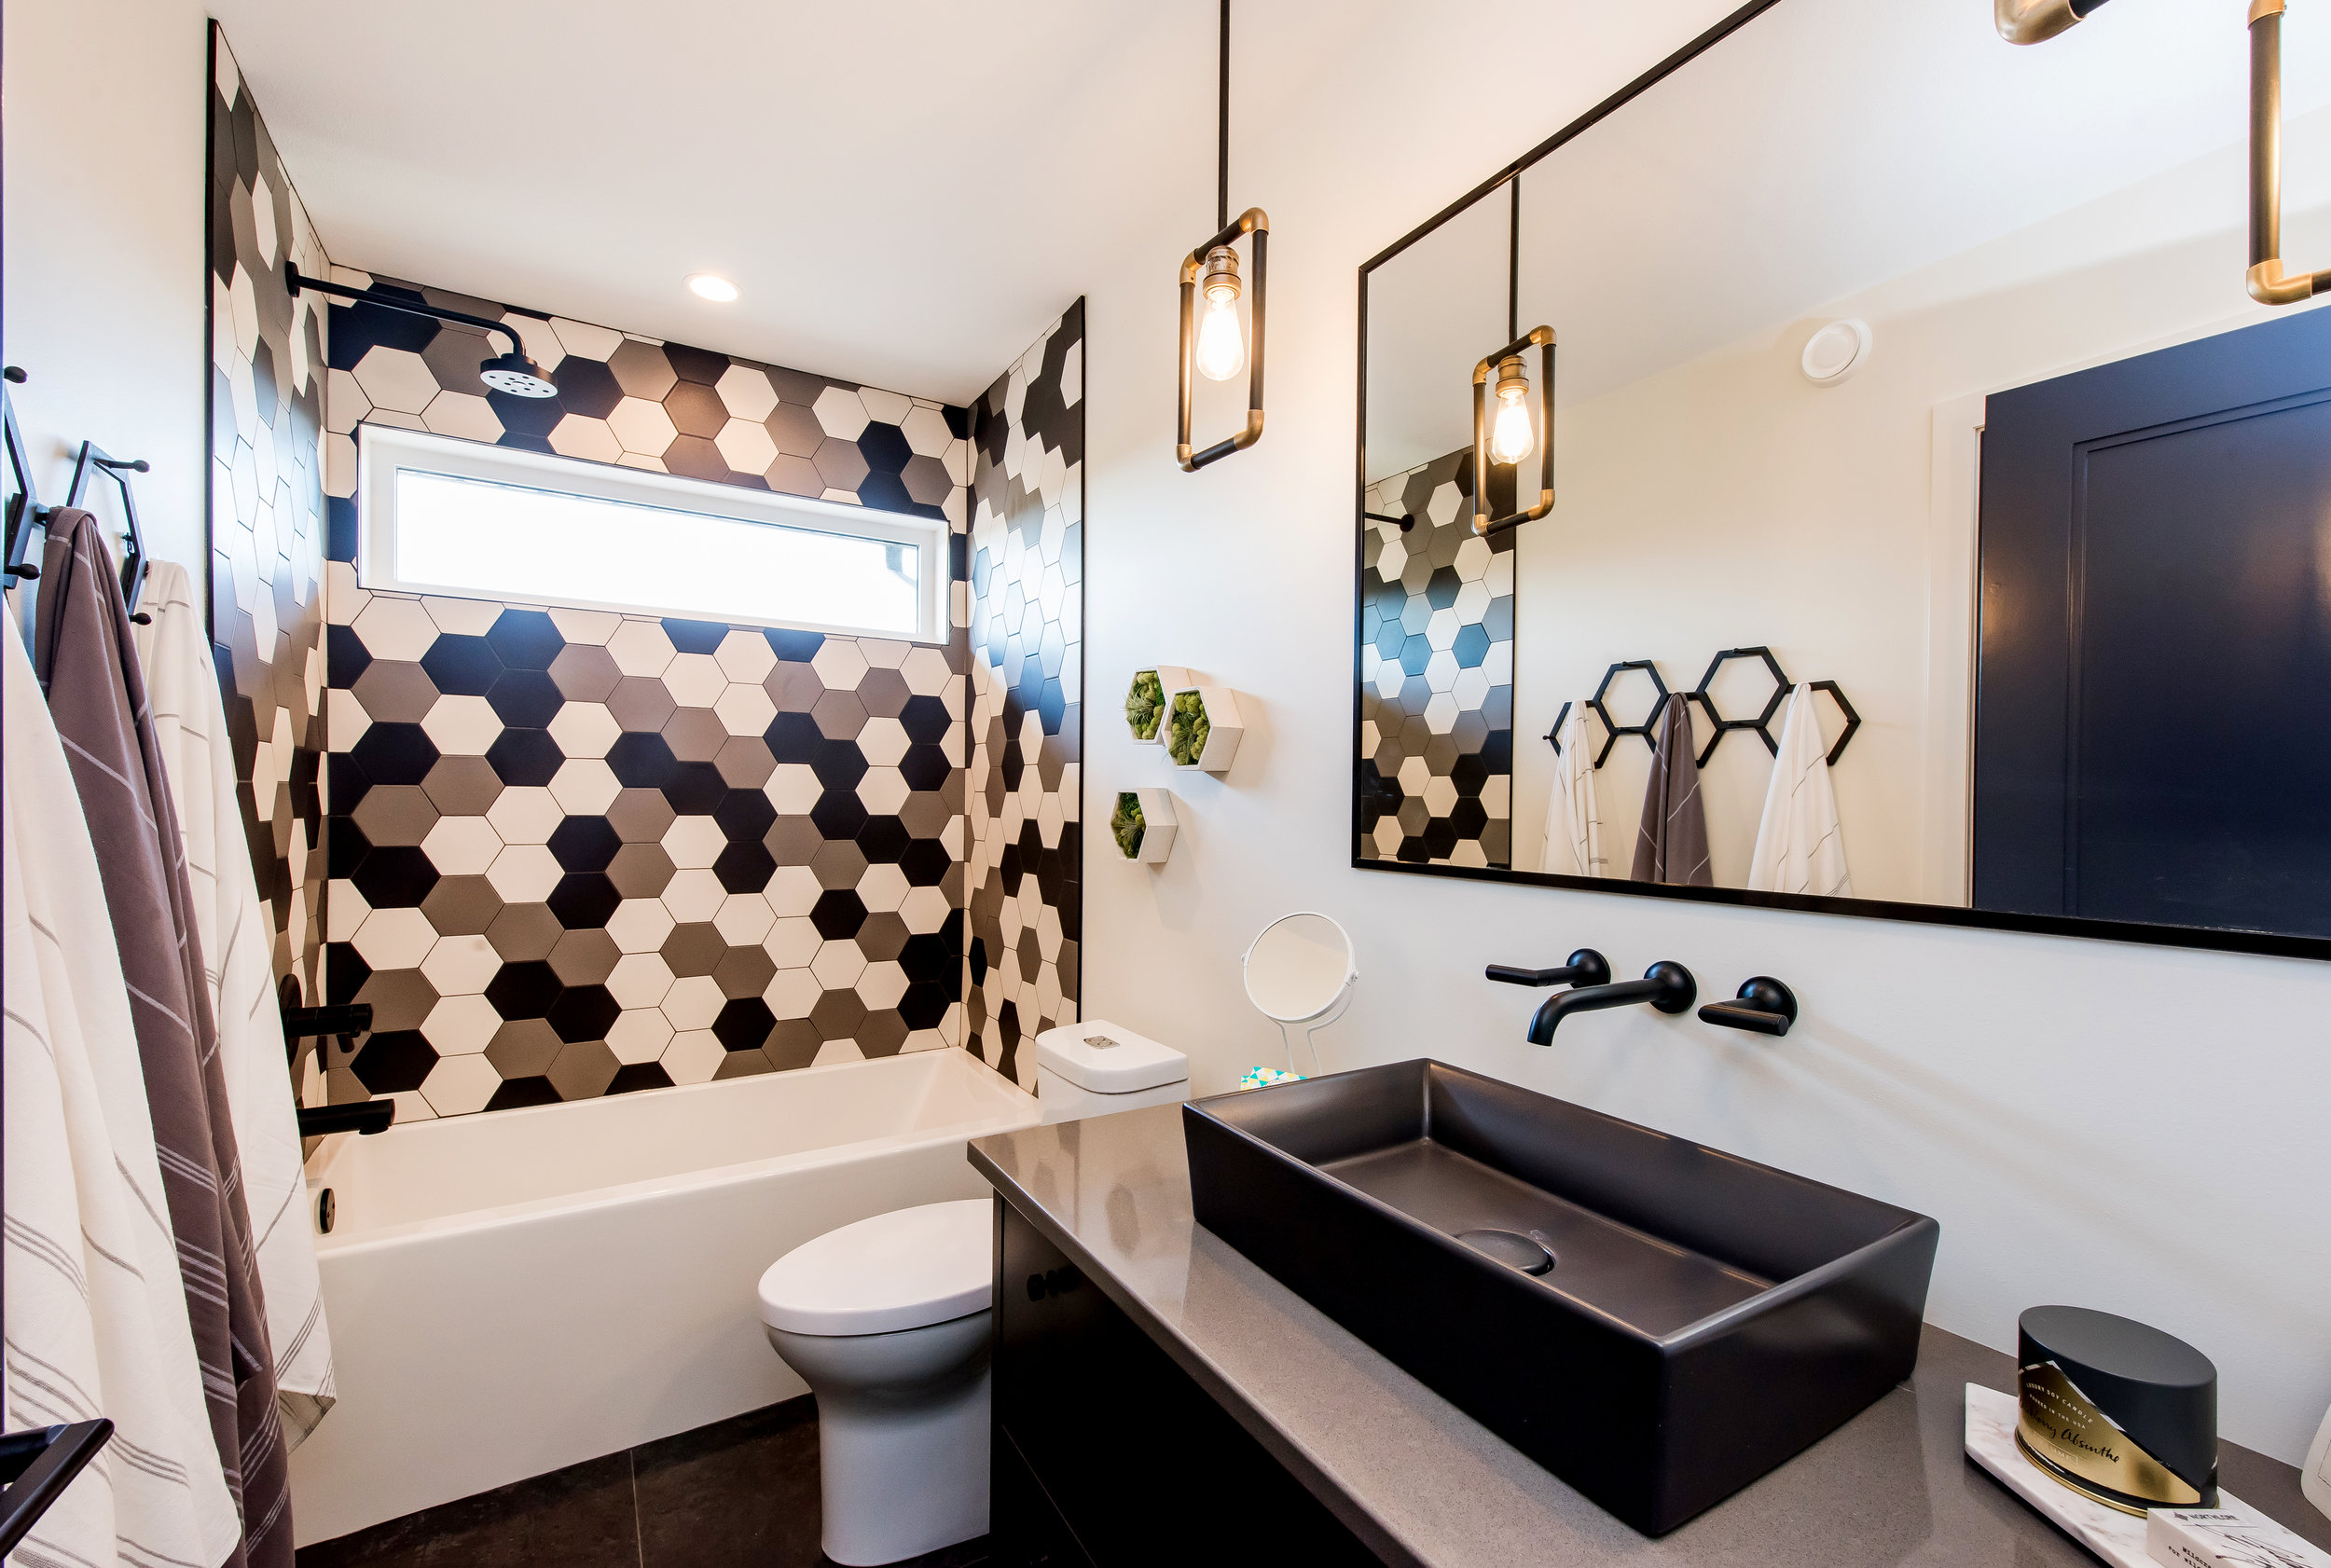 Okay, we admit – we may have an obsession – note the geometric towel rack, and hexagon moss wall hangings that tie in perfectly to the multi-coloured hexagon shower tile...can't have too much of a good thing right?